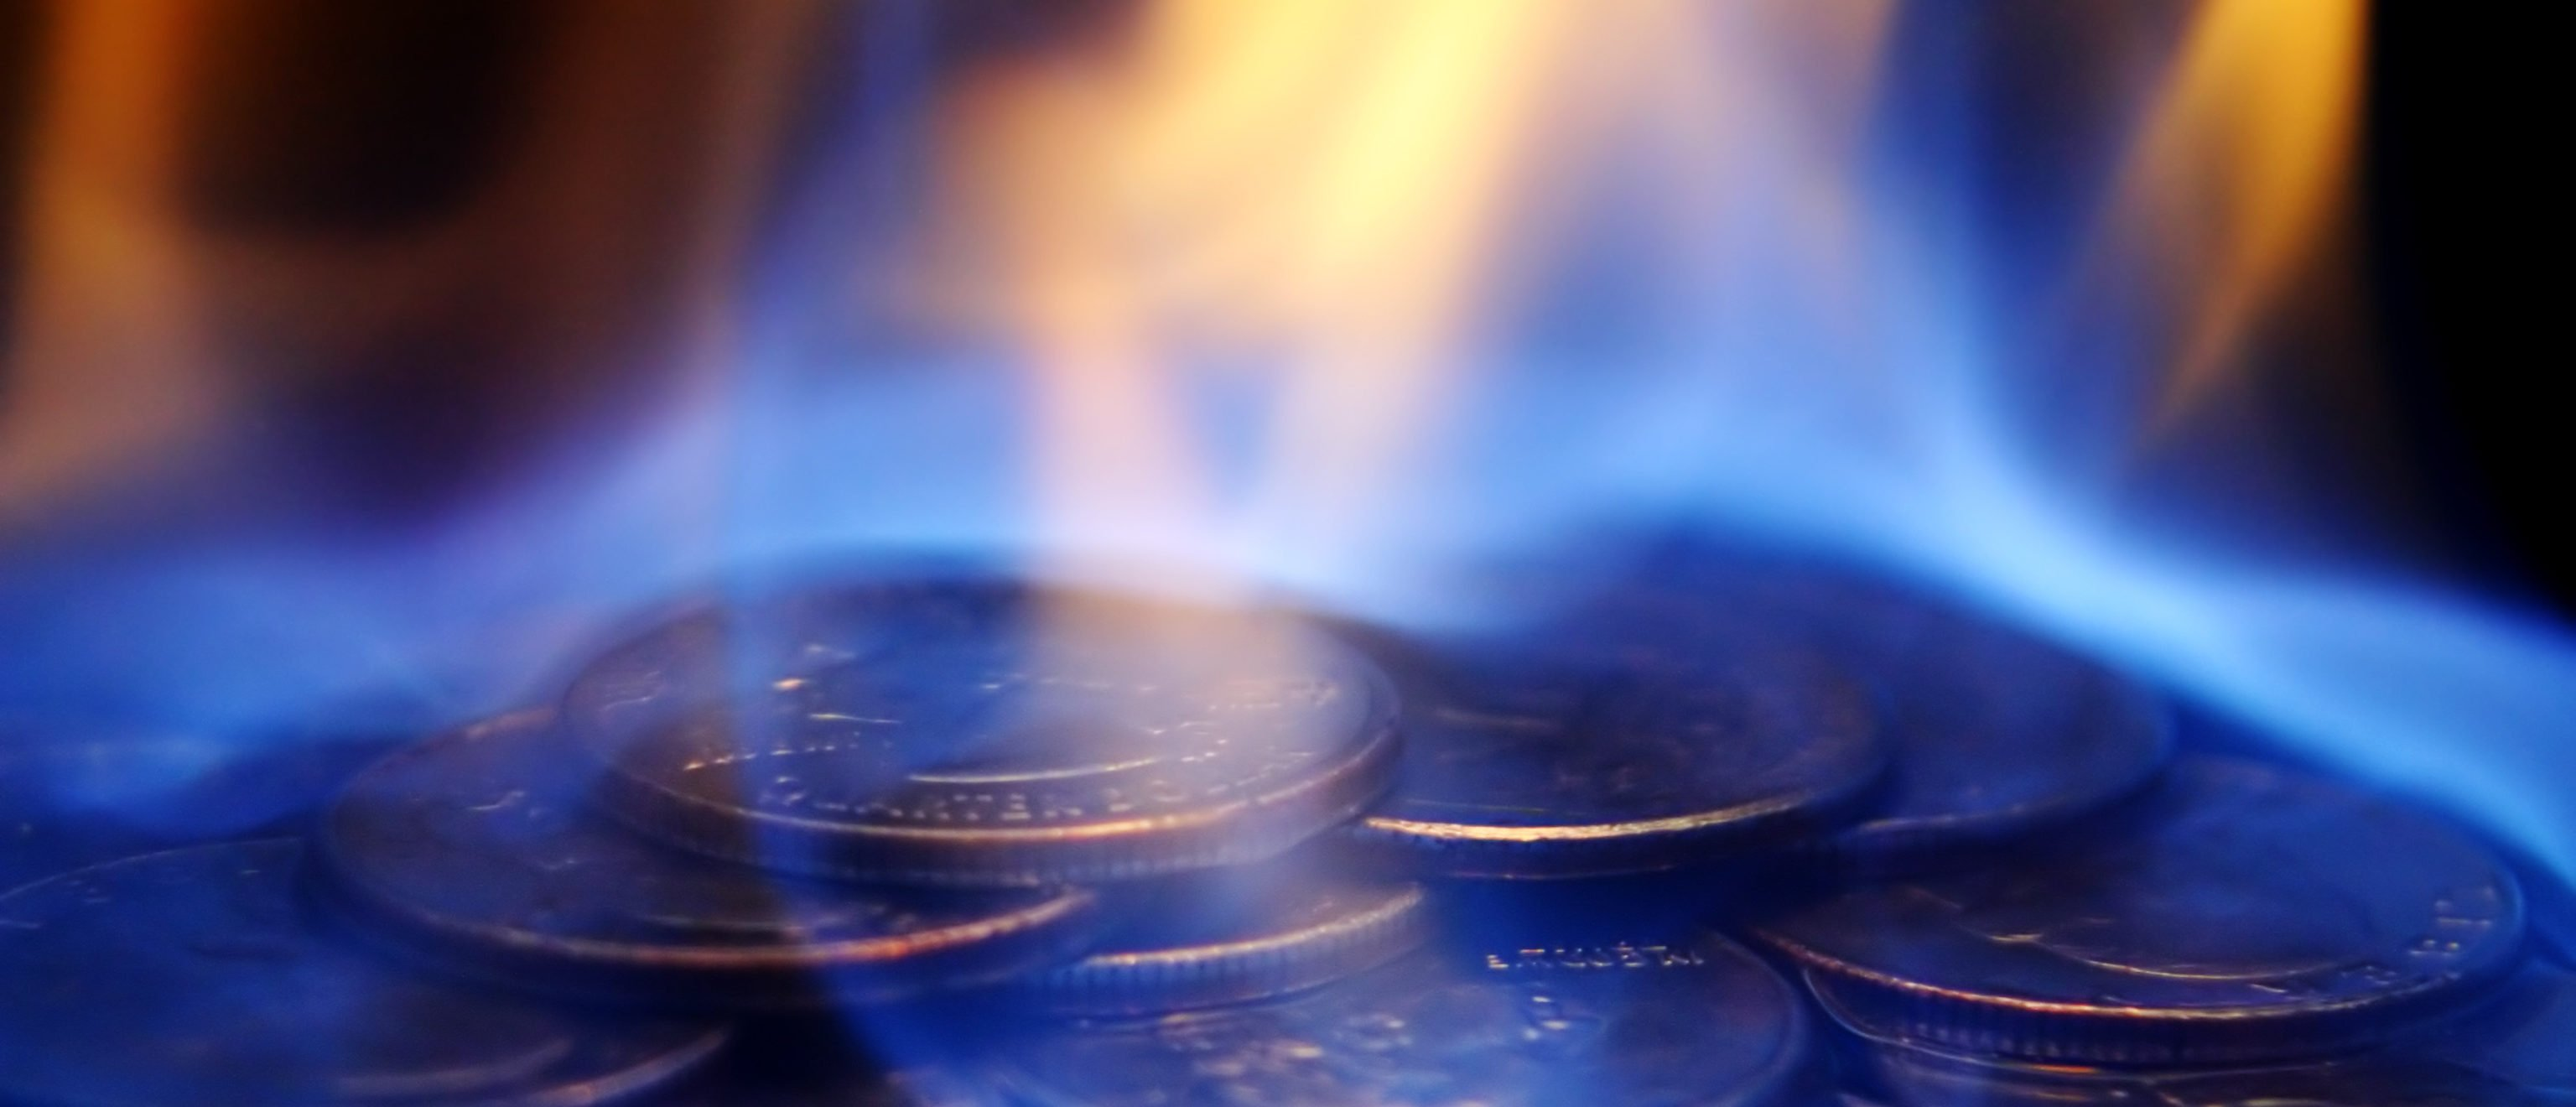 A burning pile of quarters. (Shutterstock)